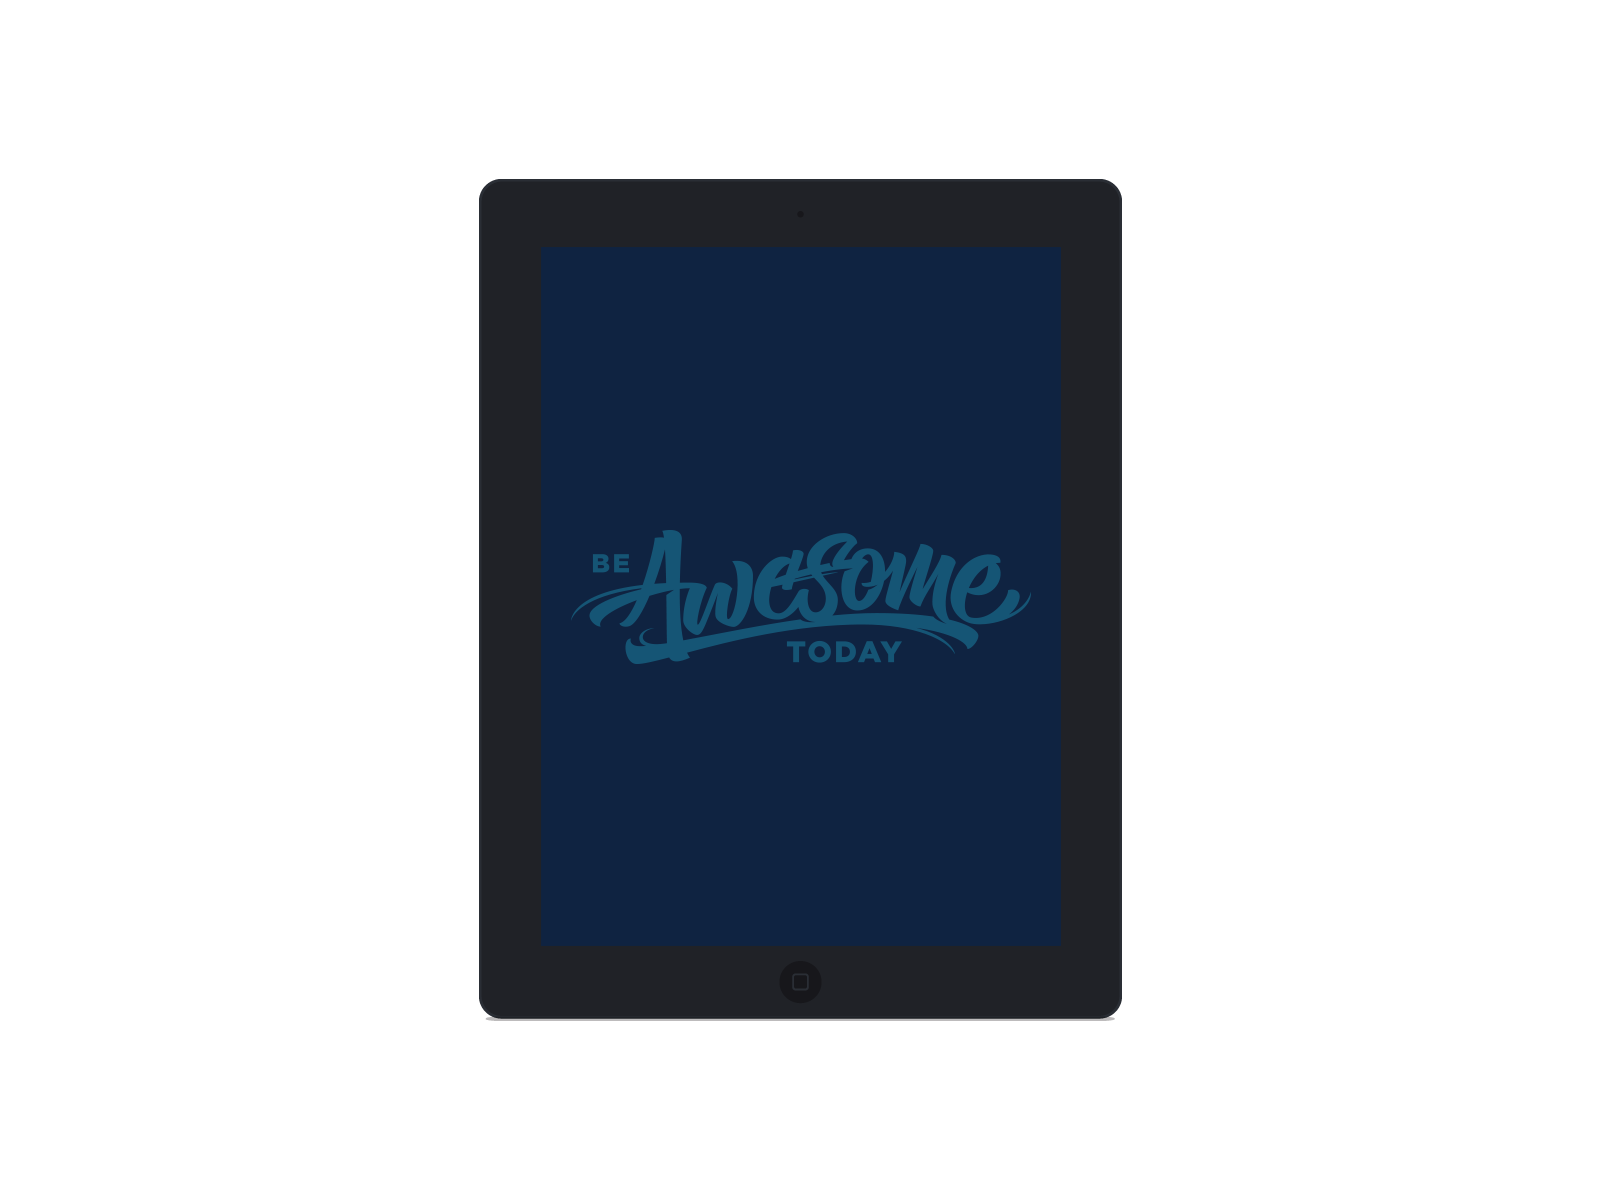 Tablet Wallpaper    BE AWESOME TODAY    DOWNLOAD